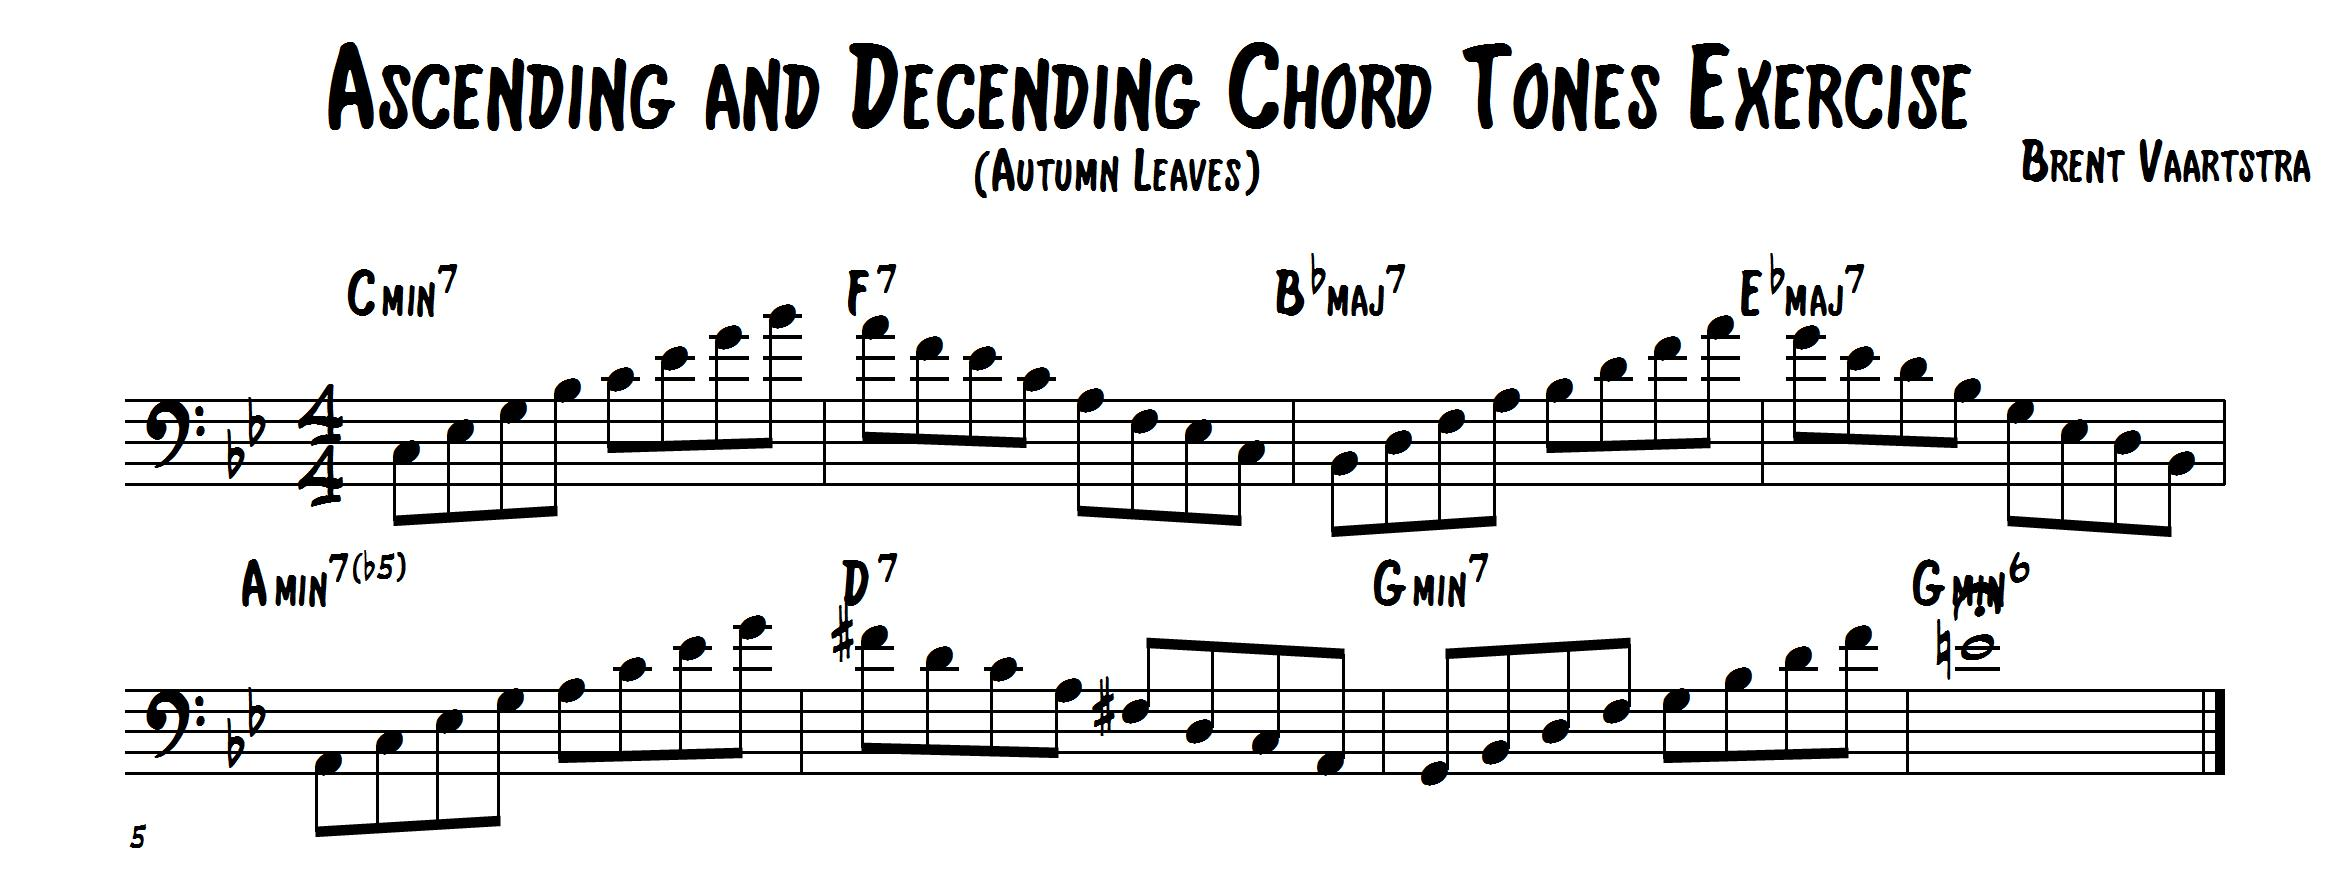 Ascending and Decending Chord Tones Exercise (Bass Clef)